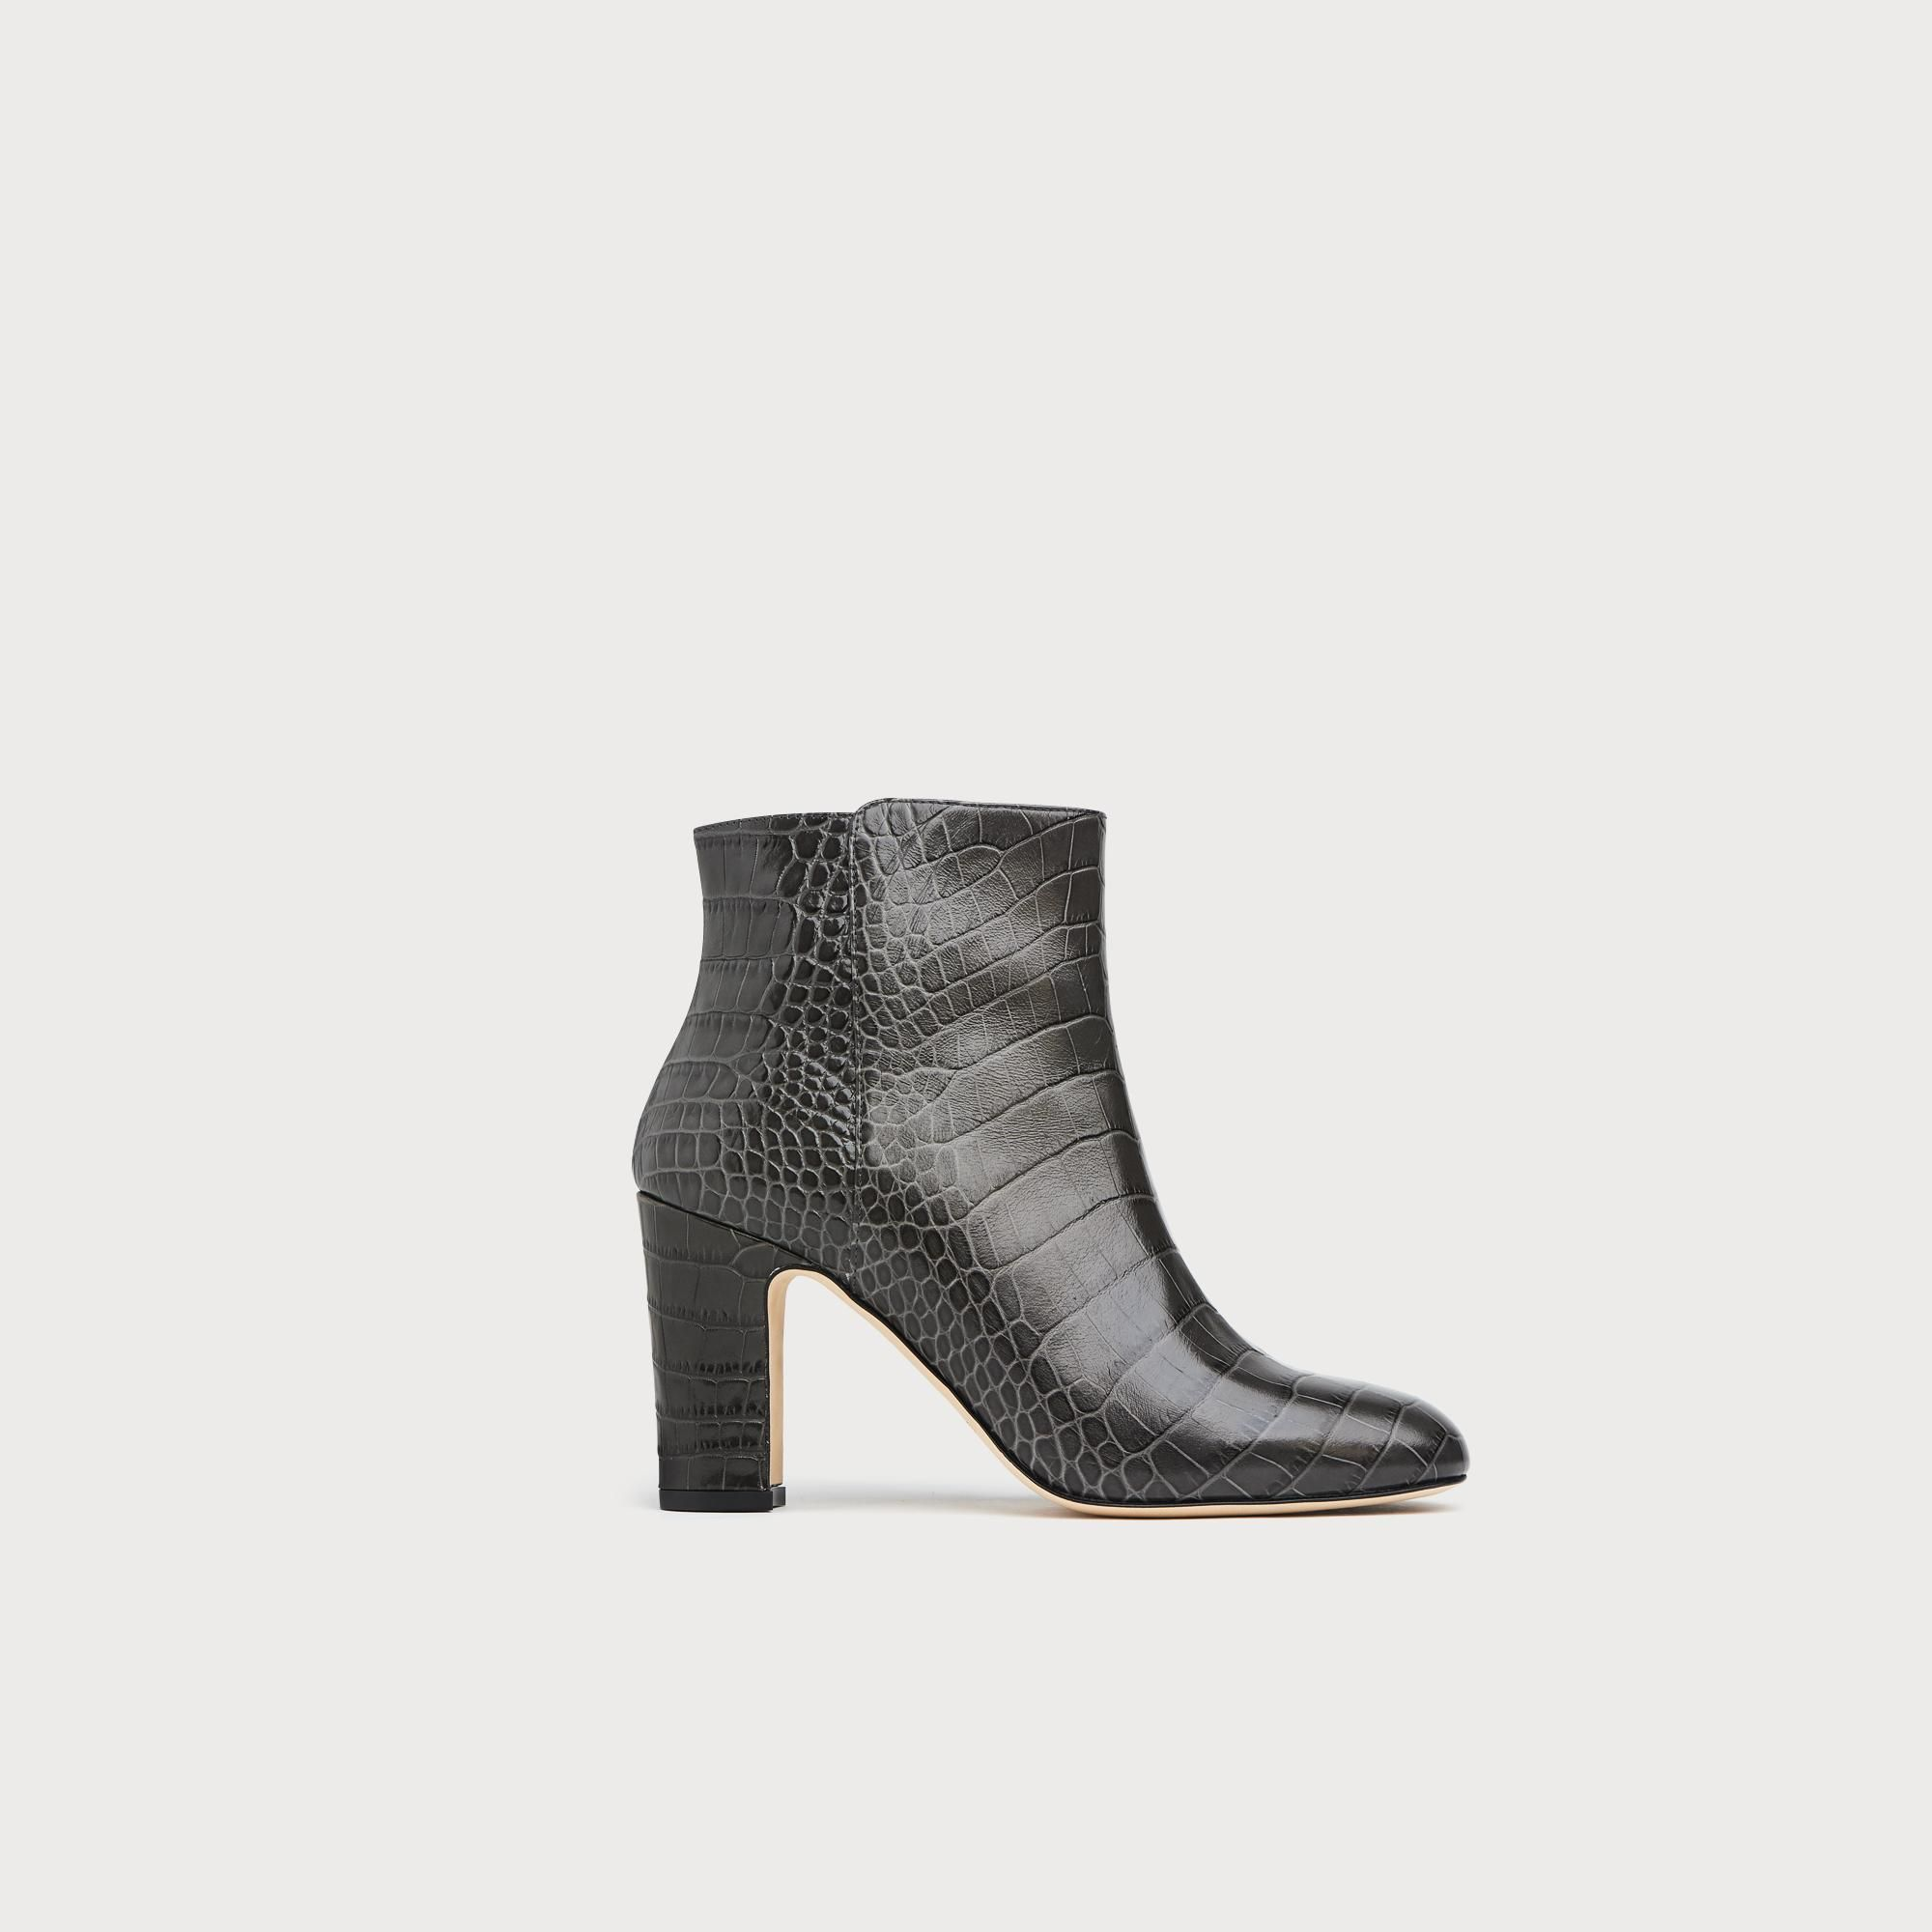 6ff50df43d9 Pin by Kerrie Ellis on Ankle Boots Autumn 2018 in 2018 | Pinterest ...